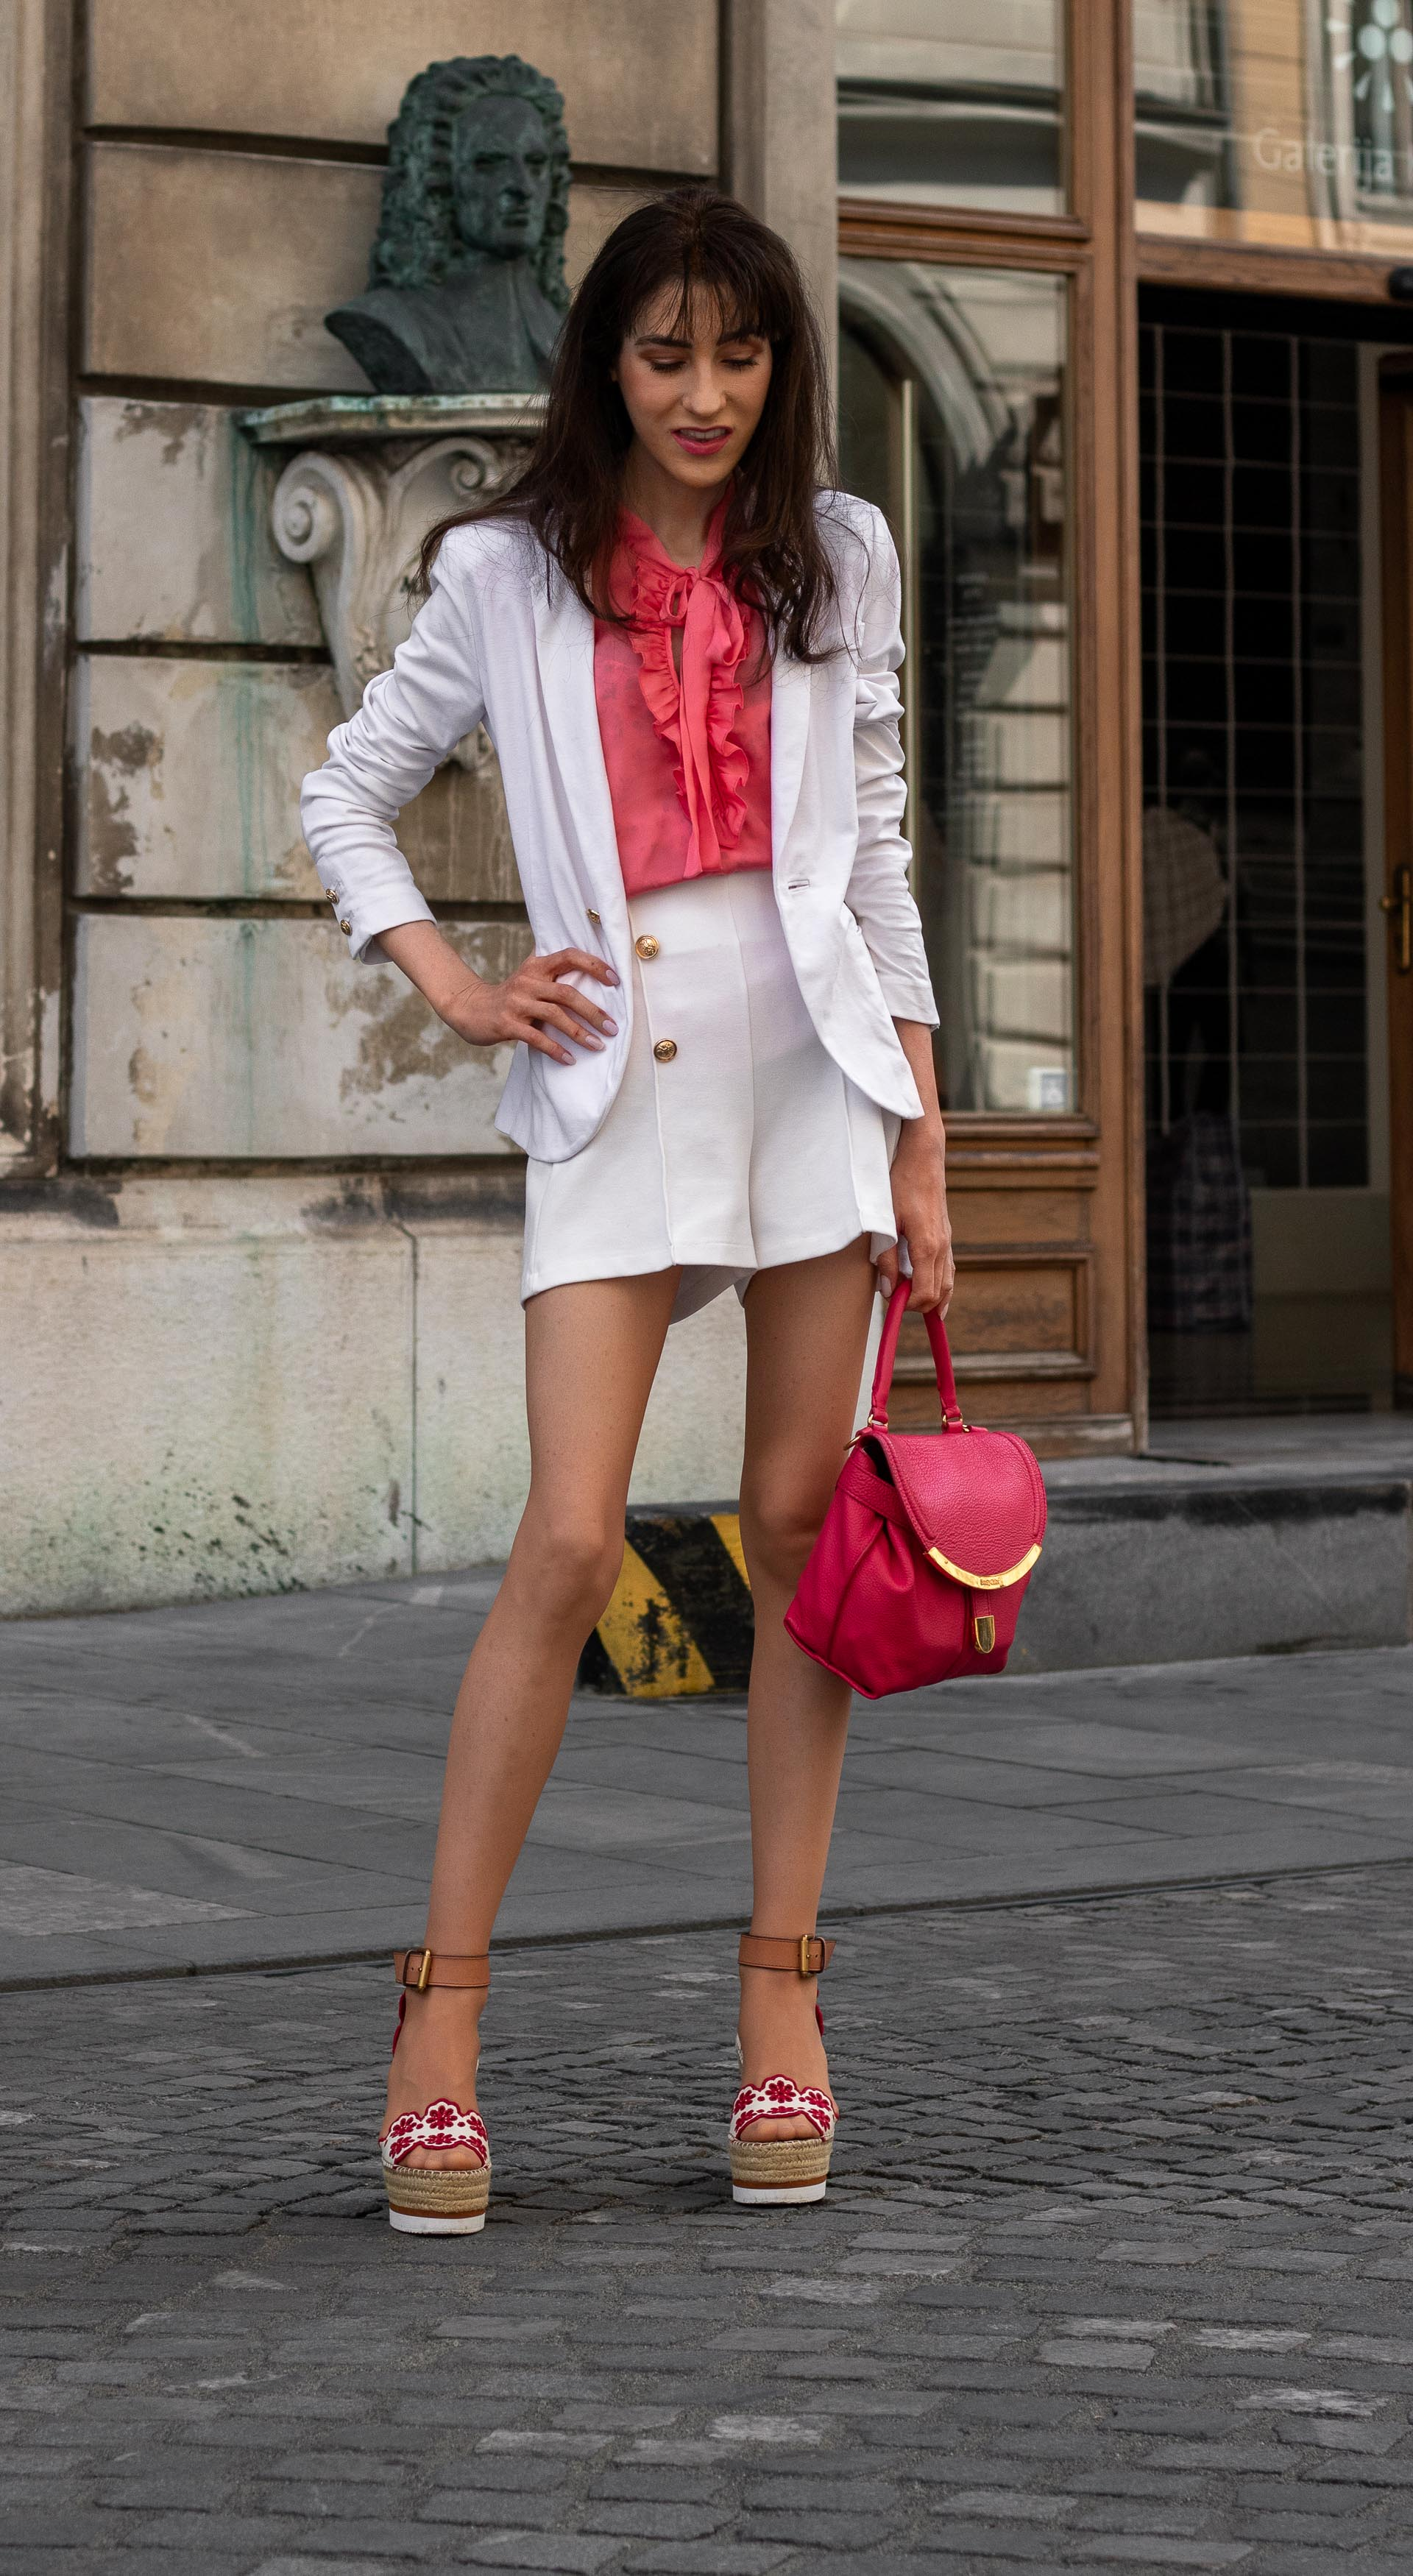 Fashion Blogger Veronika Lipar of Brunette from Wall Street wearing See by Chloé wedge espadrille white shorts white blazer orange floppy tie blouse pink top handle bag in the city